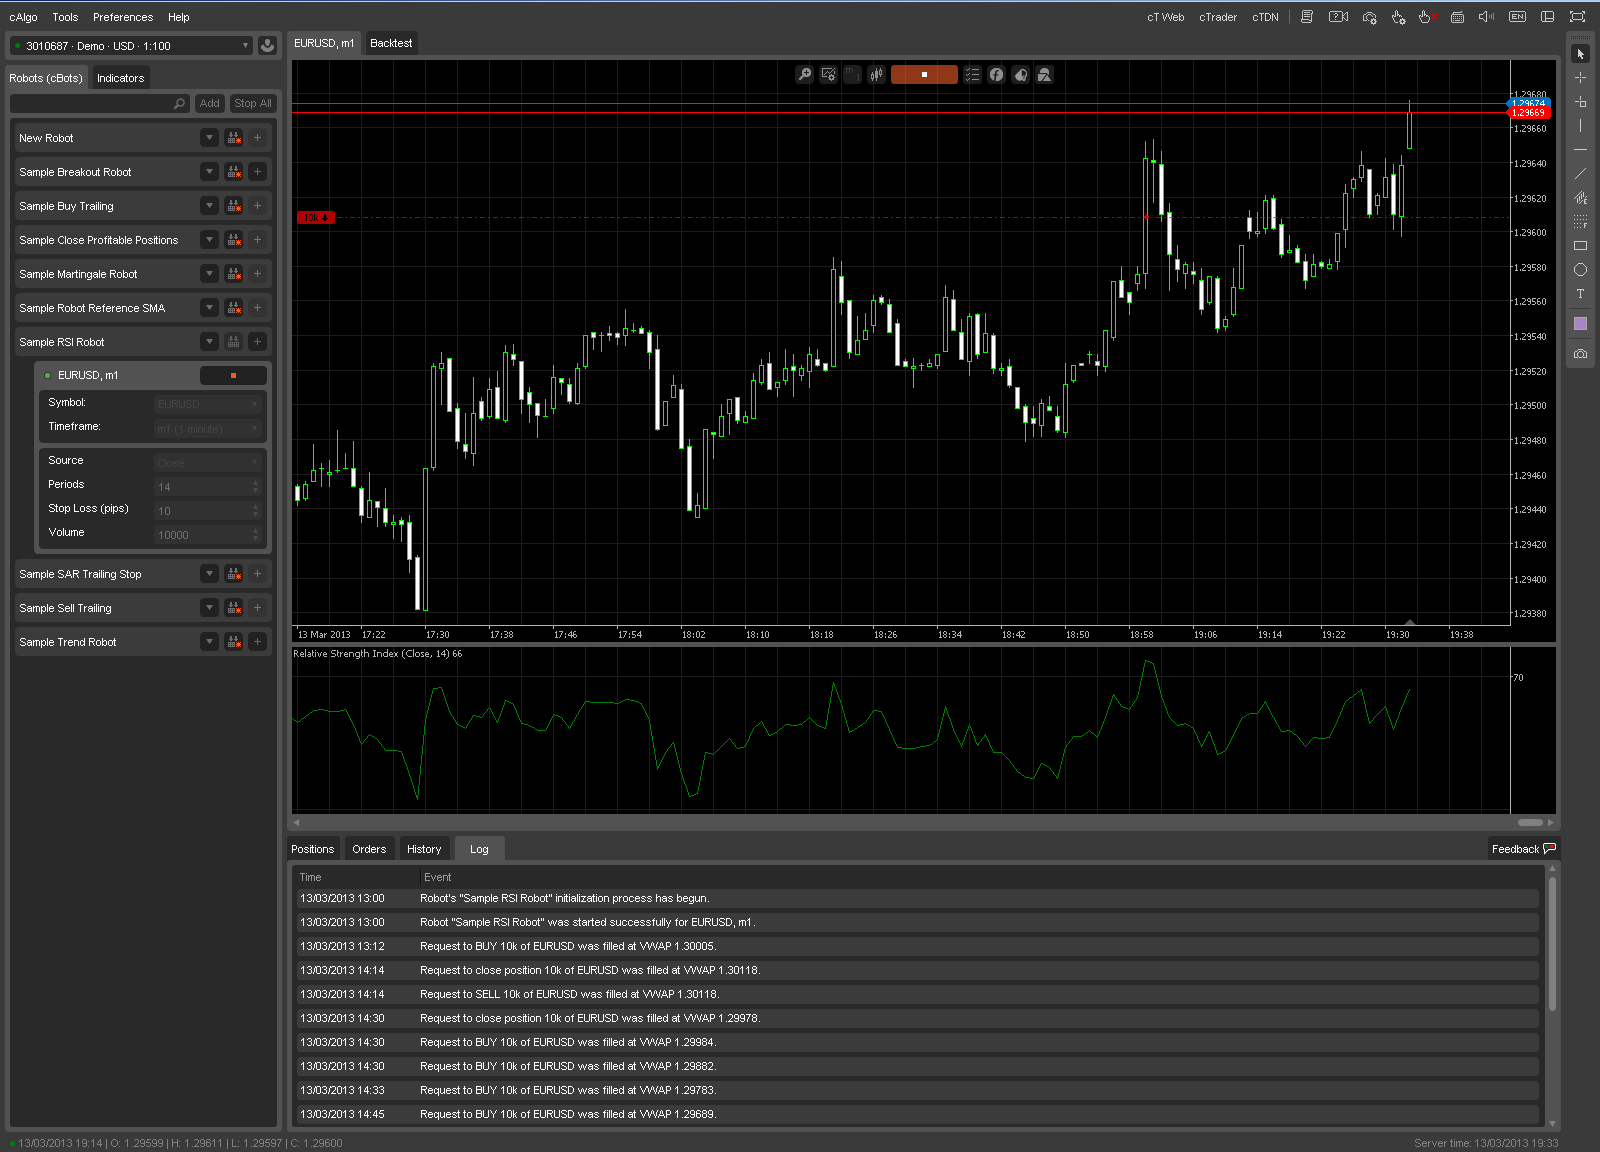 FXPro Customers Note: They currently halt trading for 5 minutes each night at midnight (Cyprus Time), as this is the time that the daily trading .